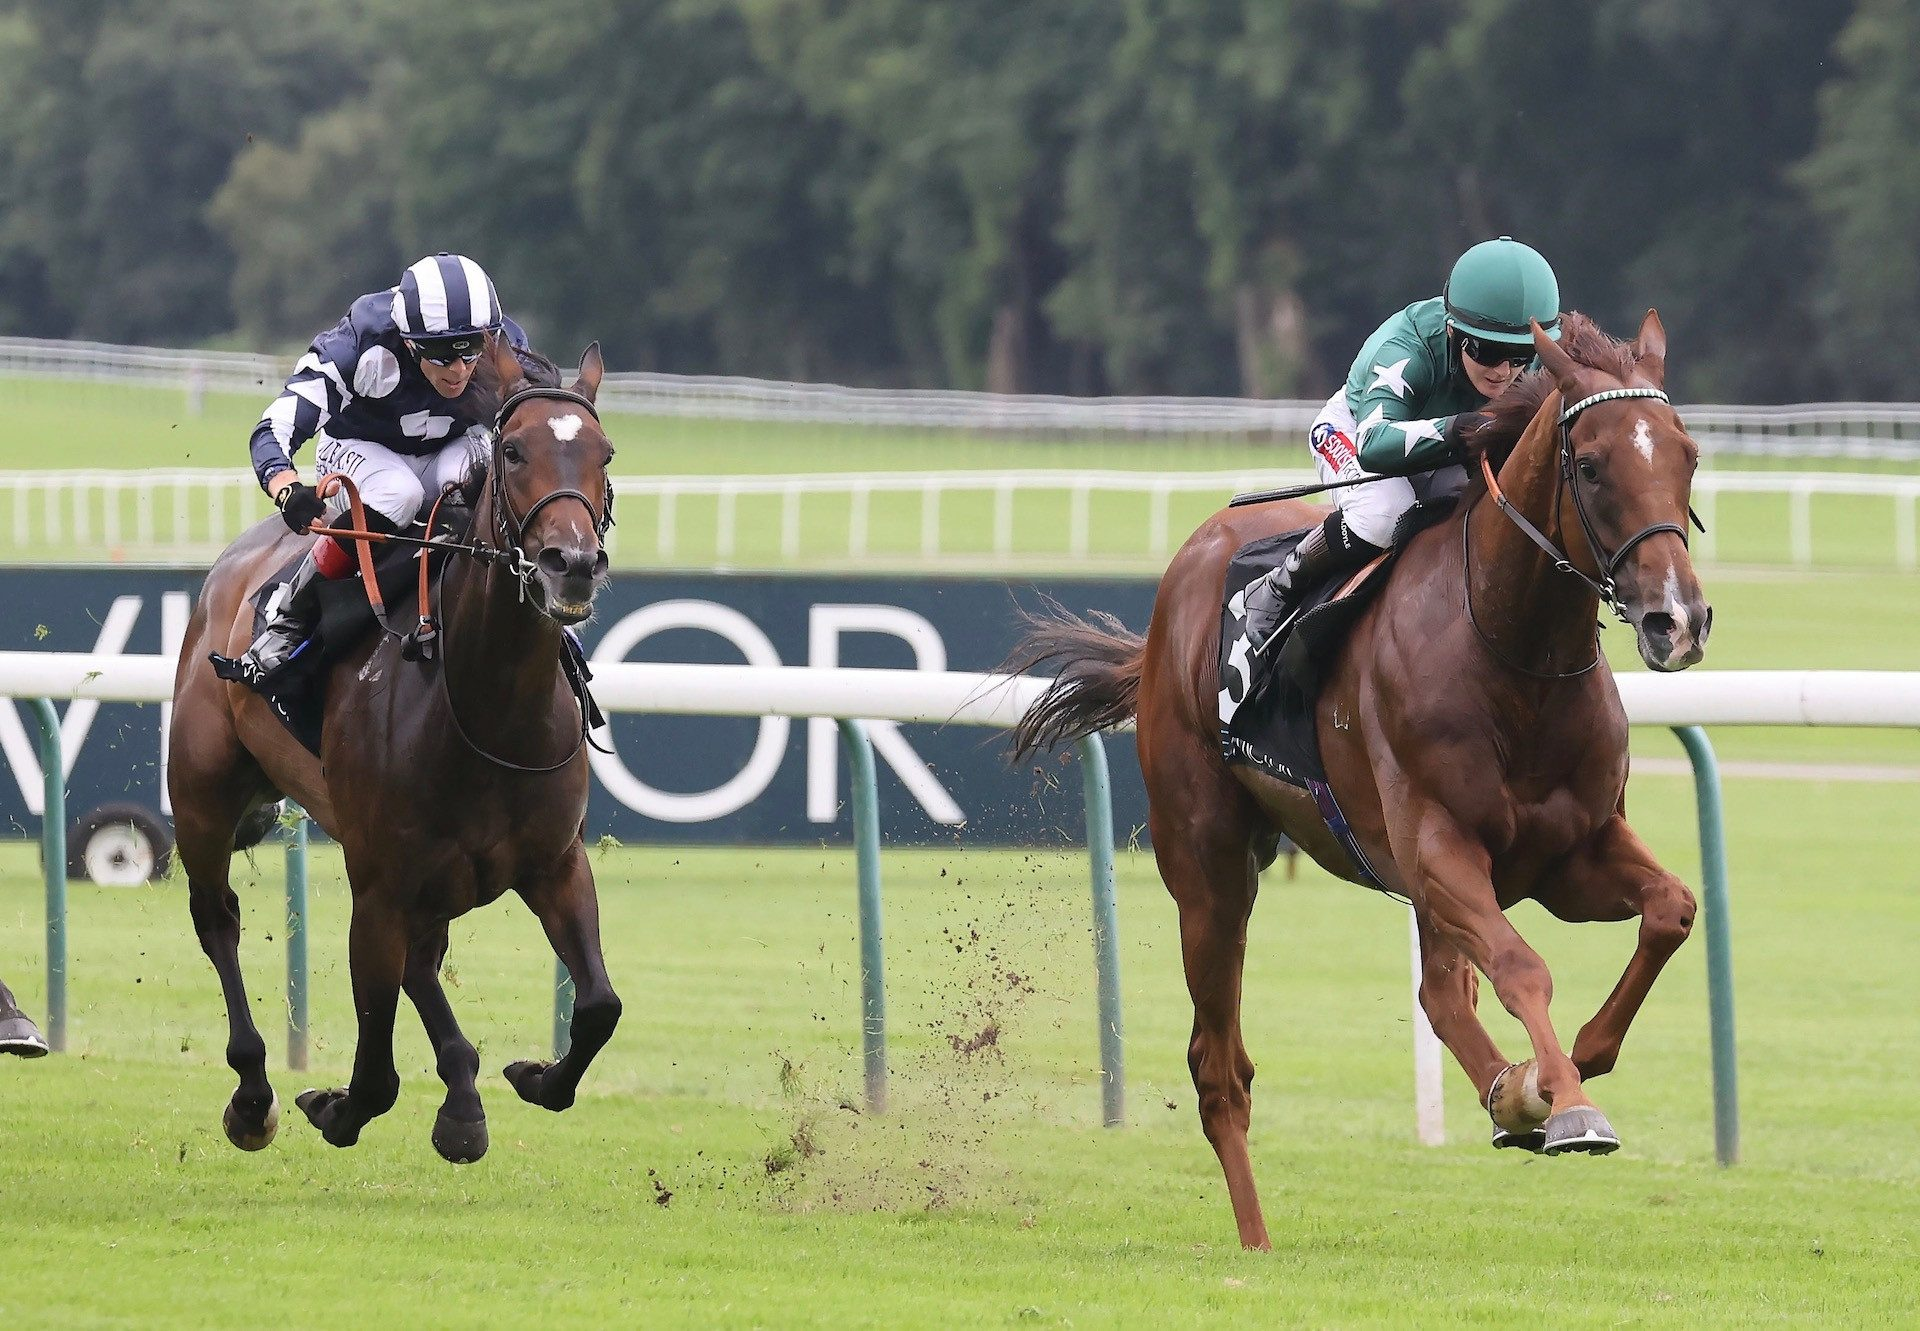 Extra Elusive (Mastercraftsman) Wins The Gr.3 Rose Of Lancaster Stakes at Haydock